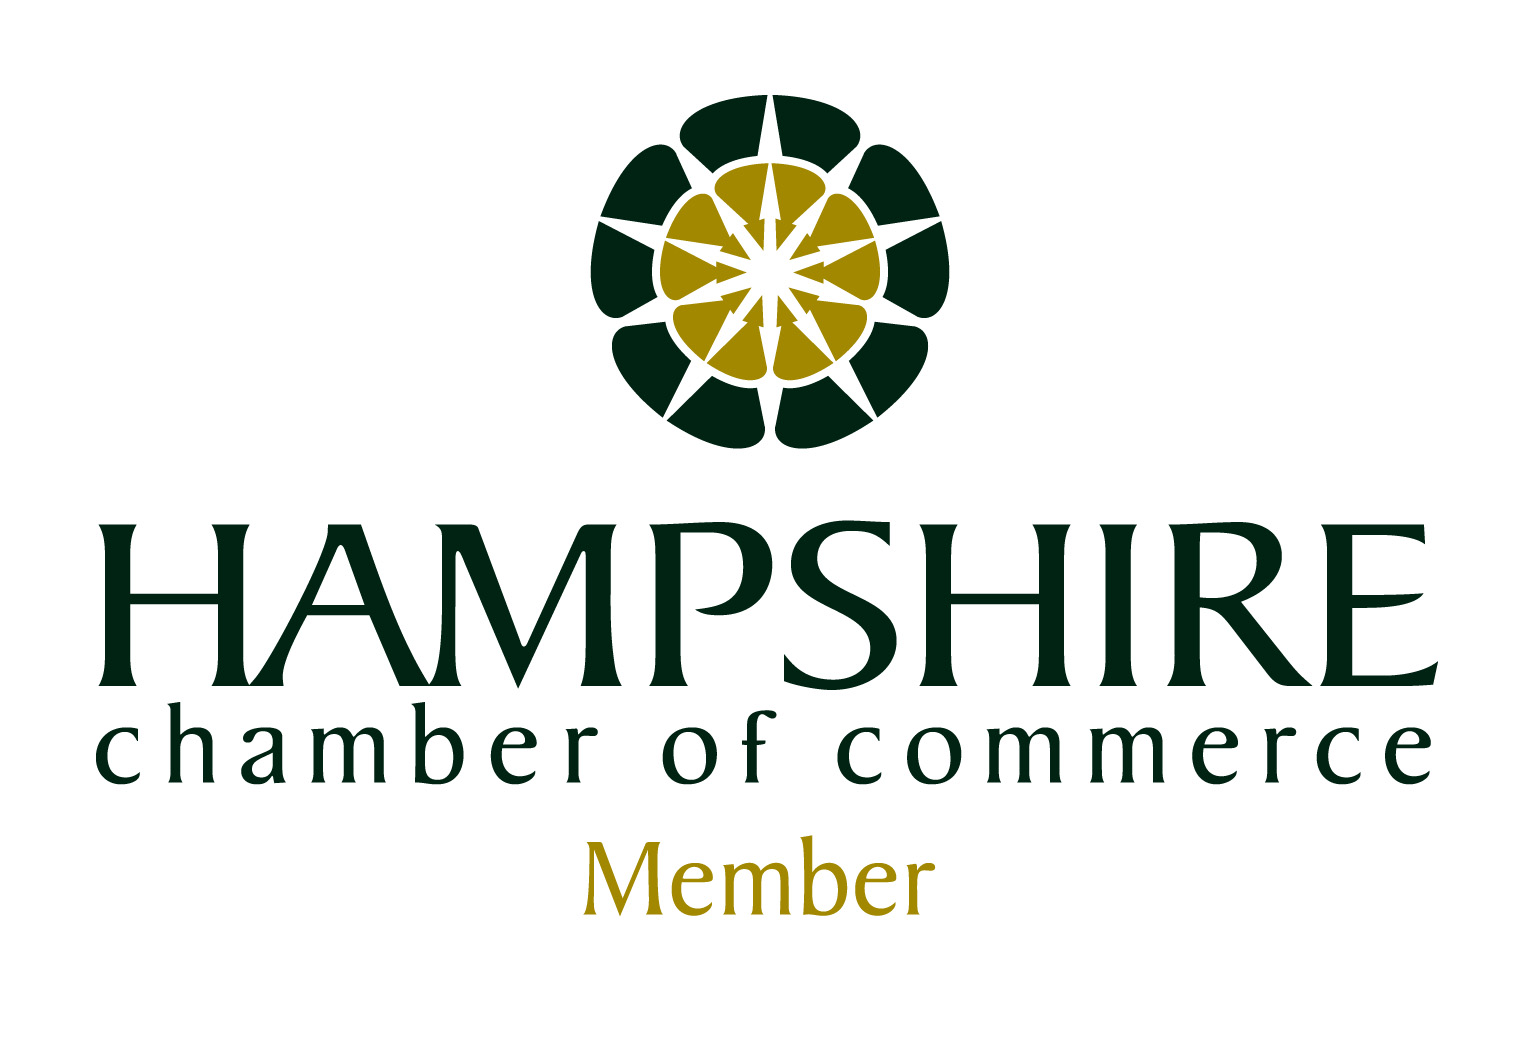 Hampshire-Chamber-of-Commerce-Member-logo-Colour